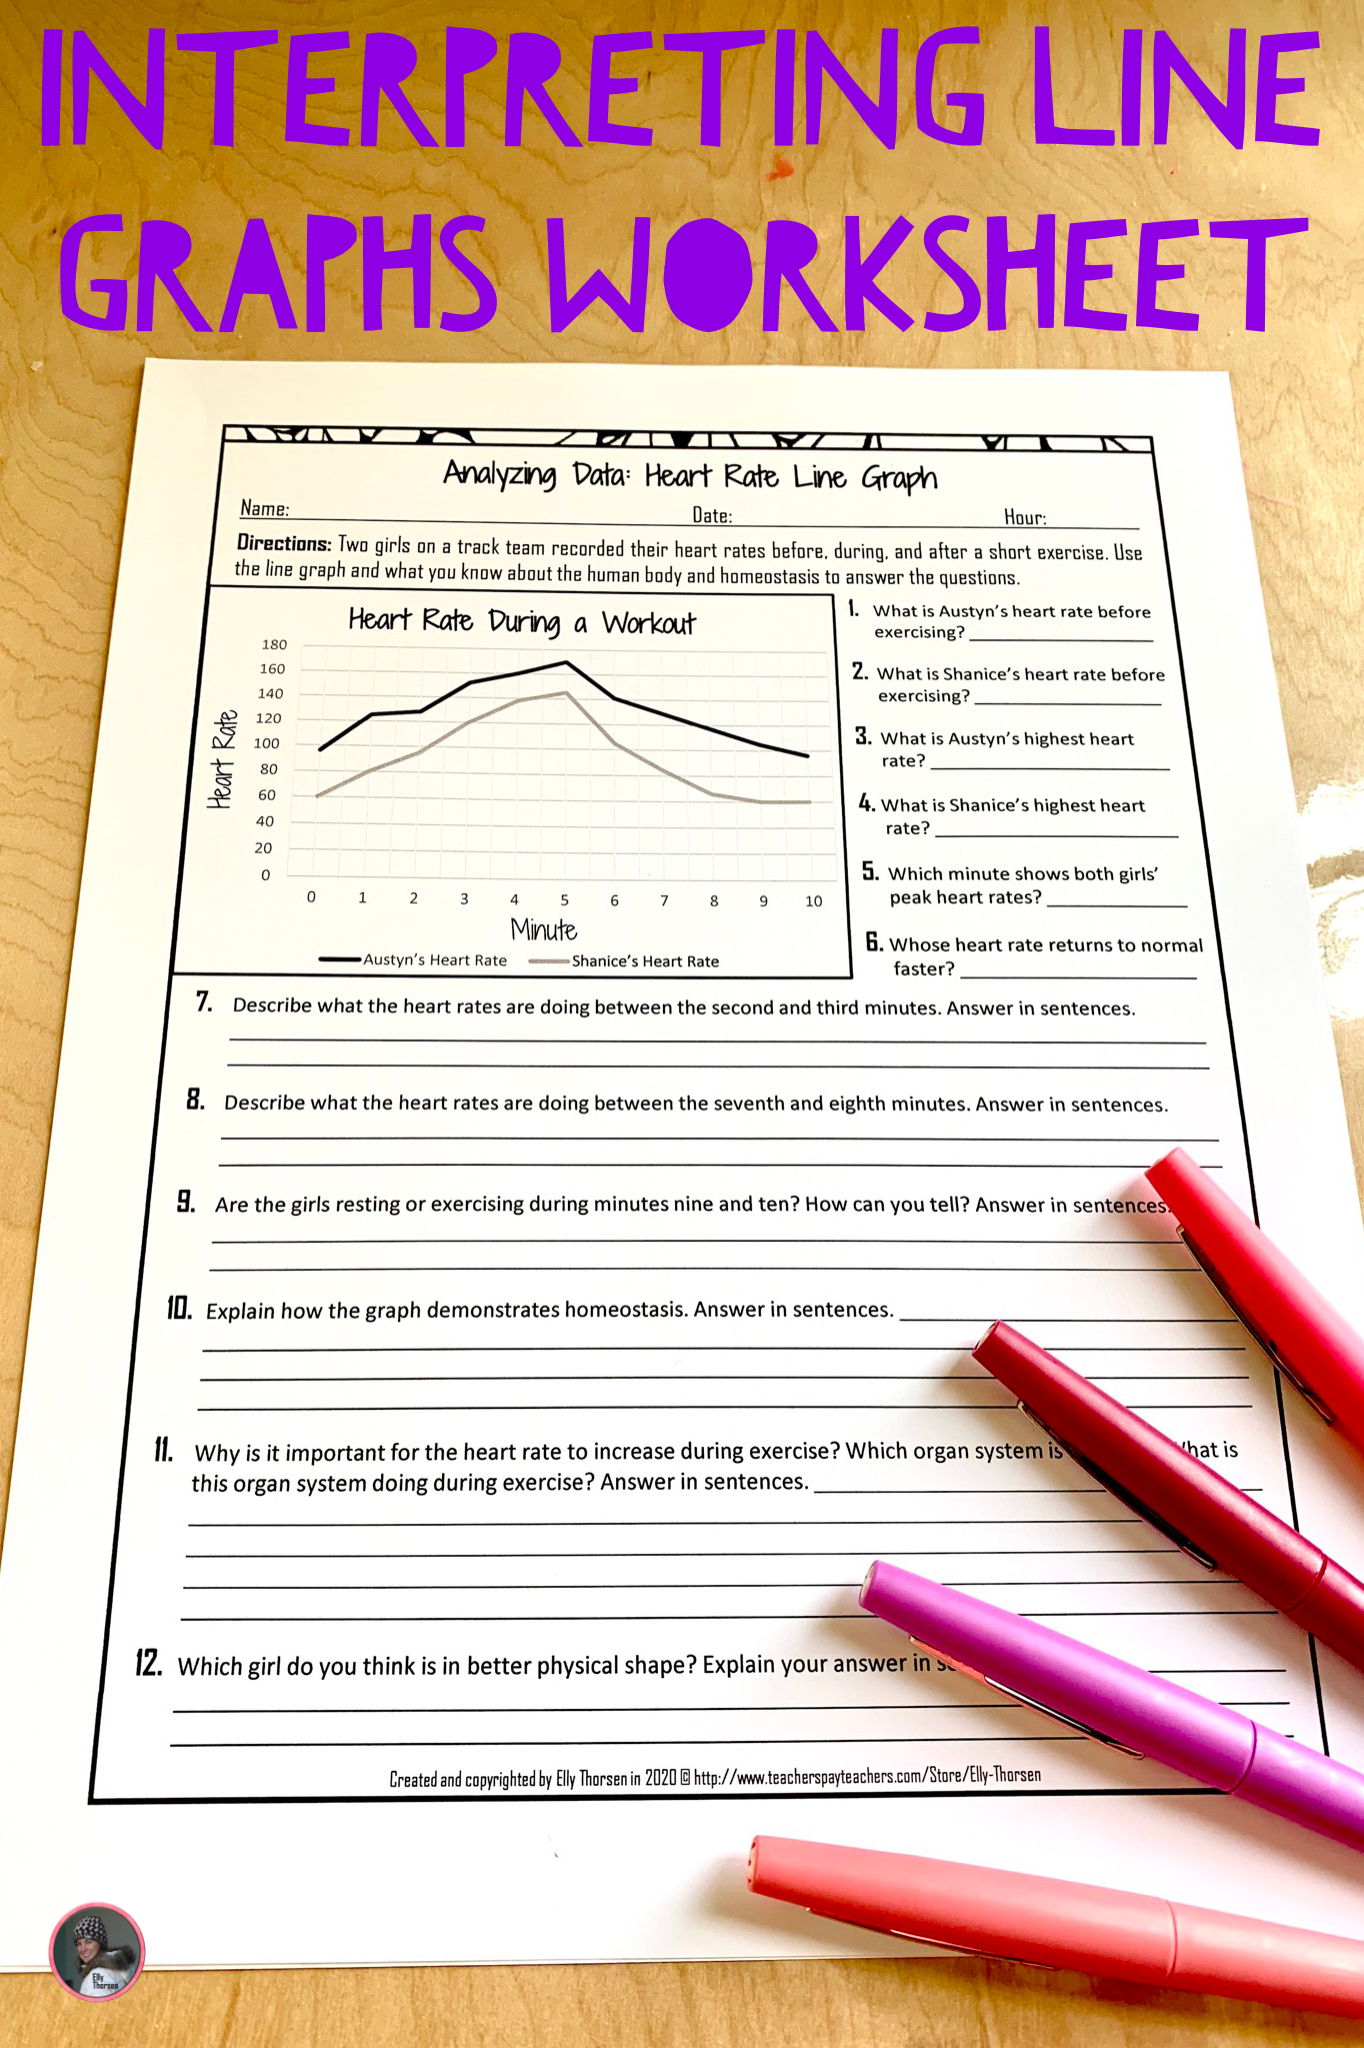 Yzing Data Heart Rate Line Graph Worksheet For